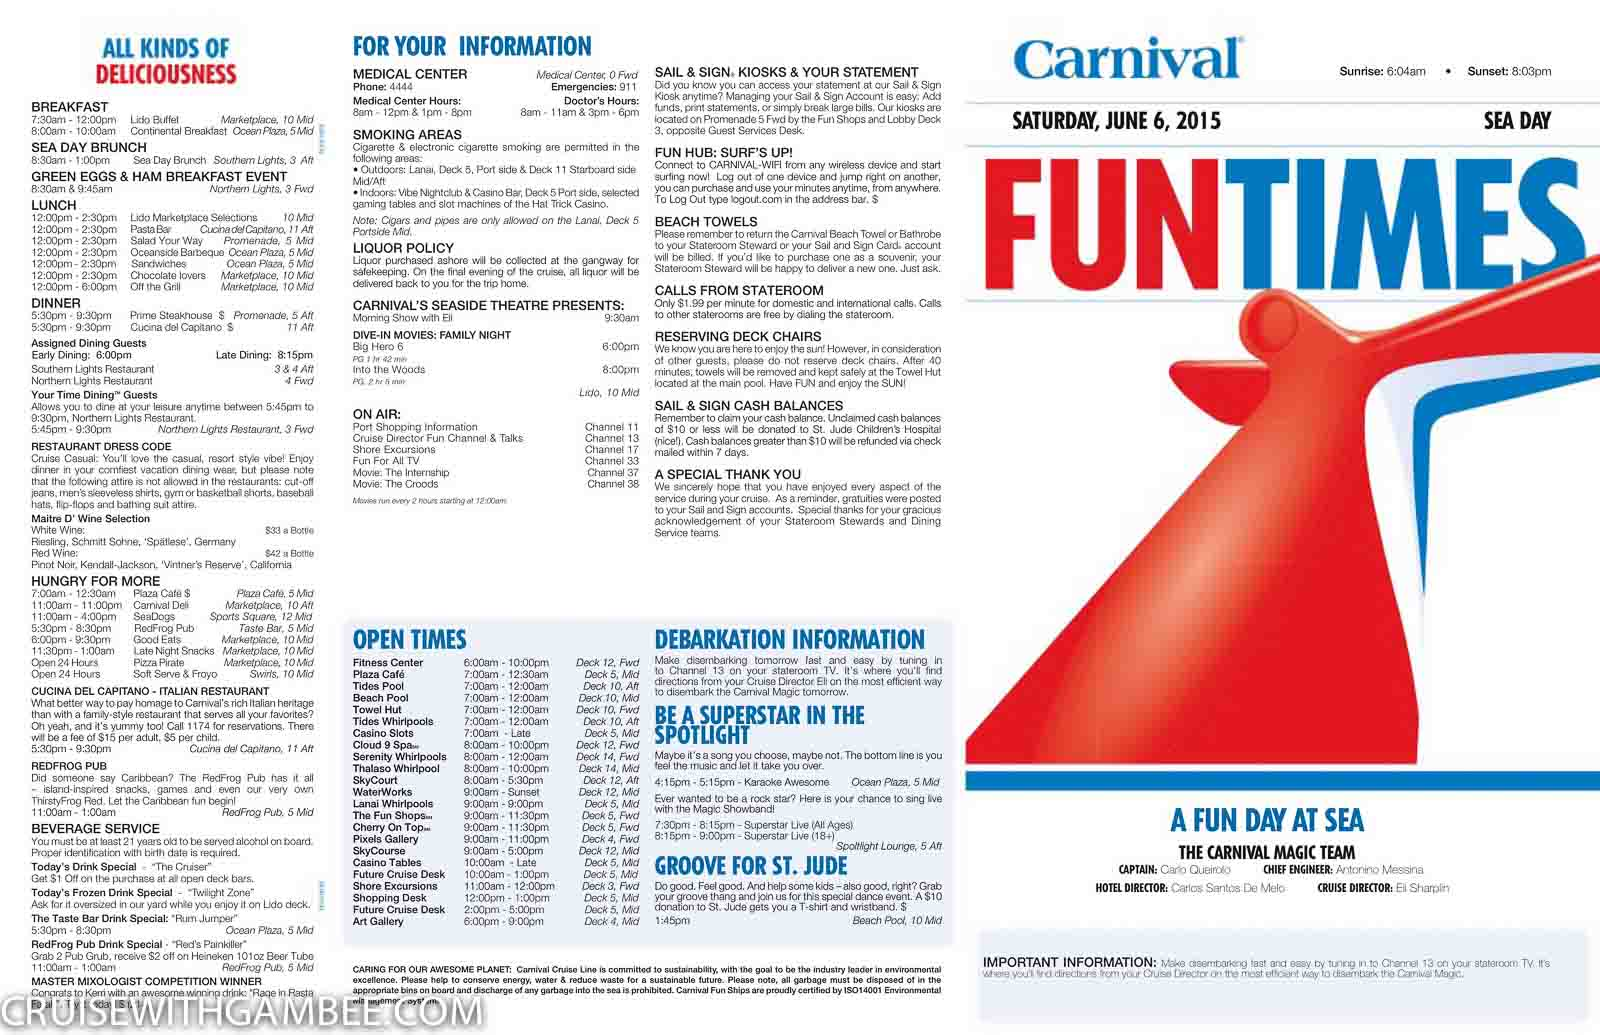 Carnival Magic Funtimes-13